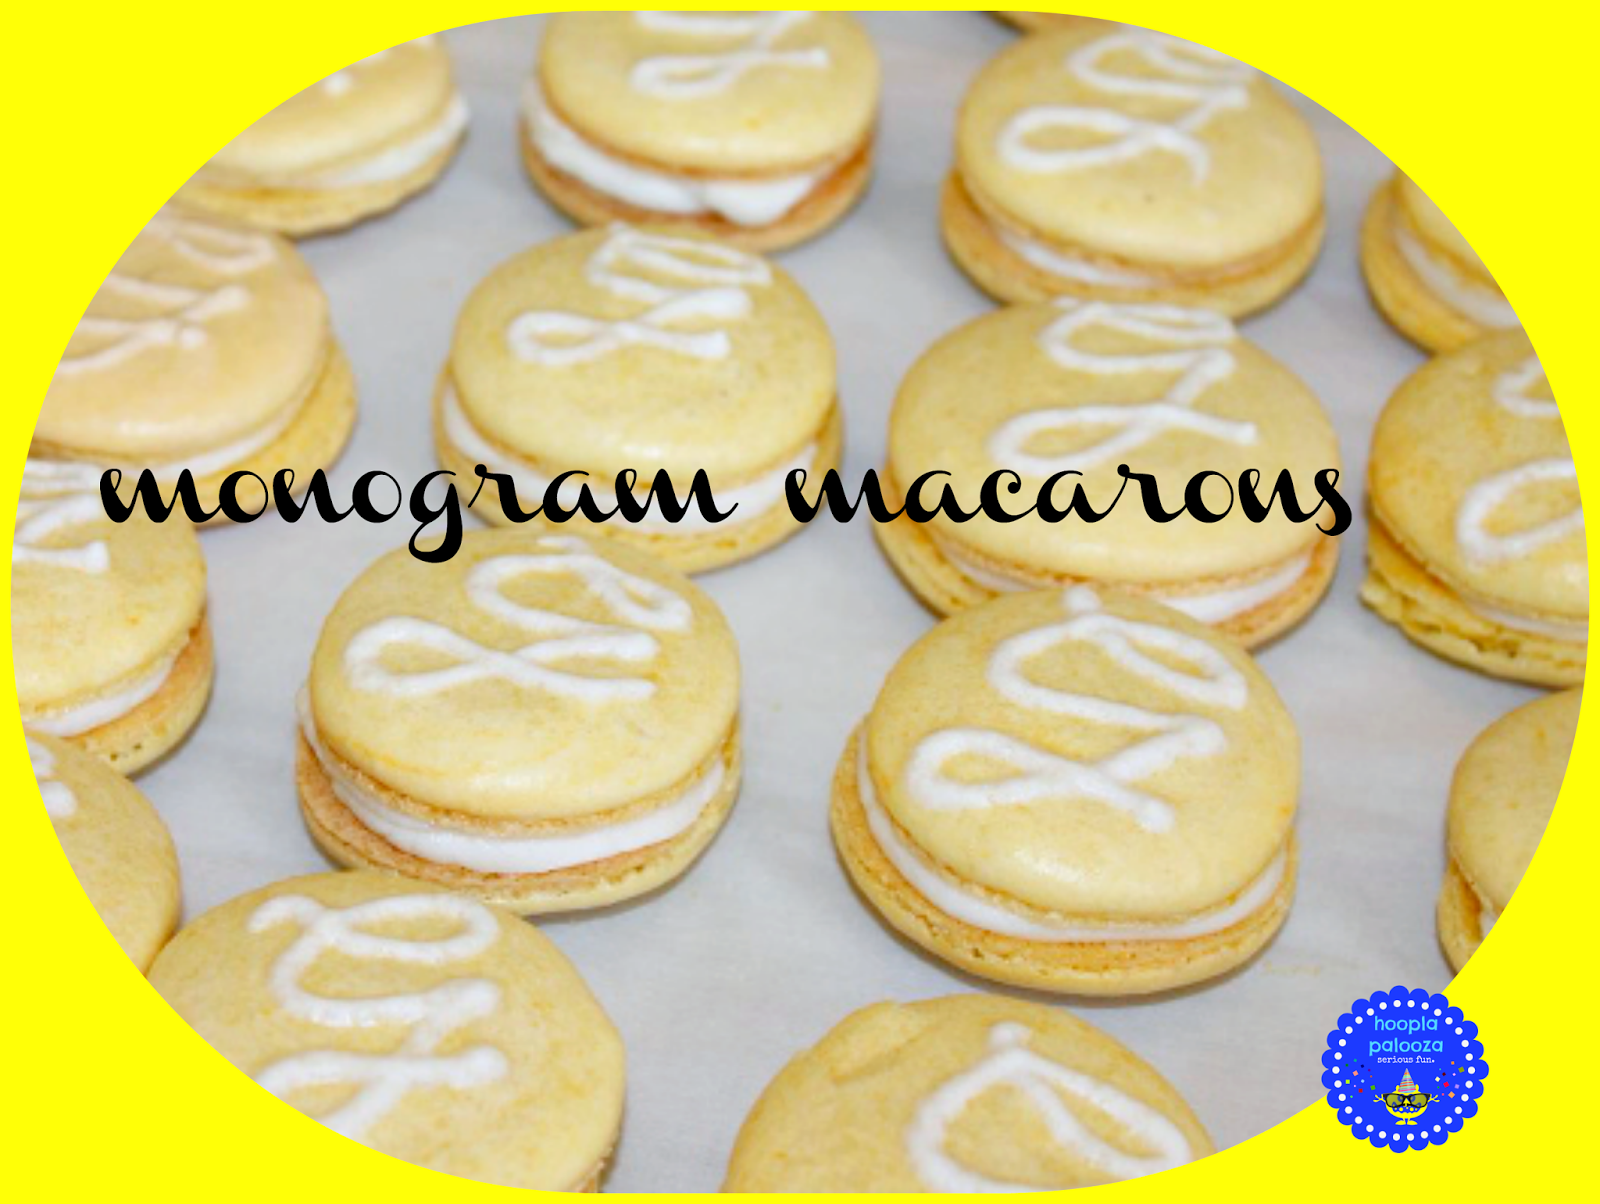 Monogram Macarons, shared by Hoopla Palooza